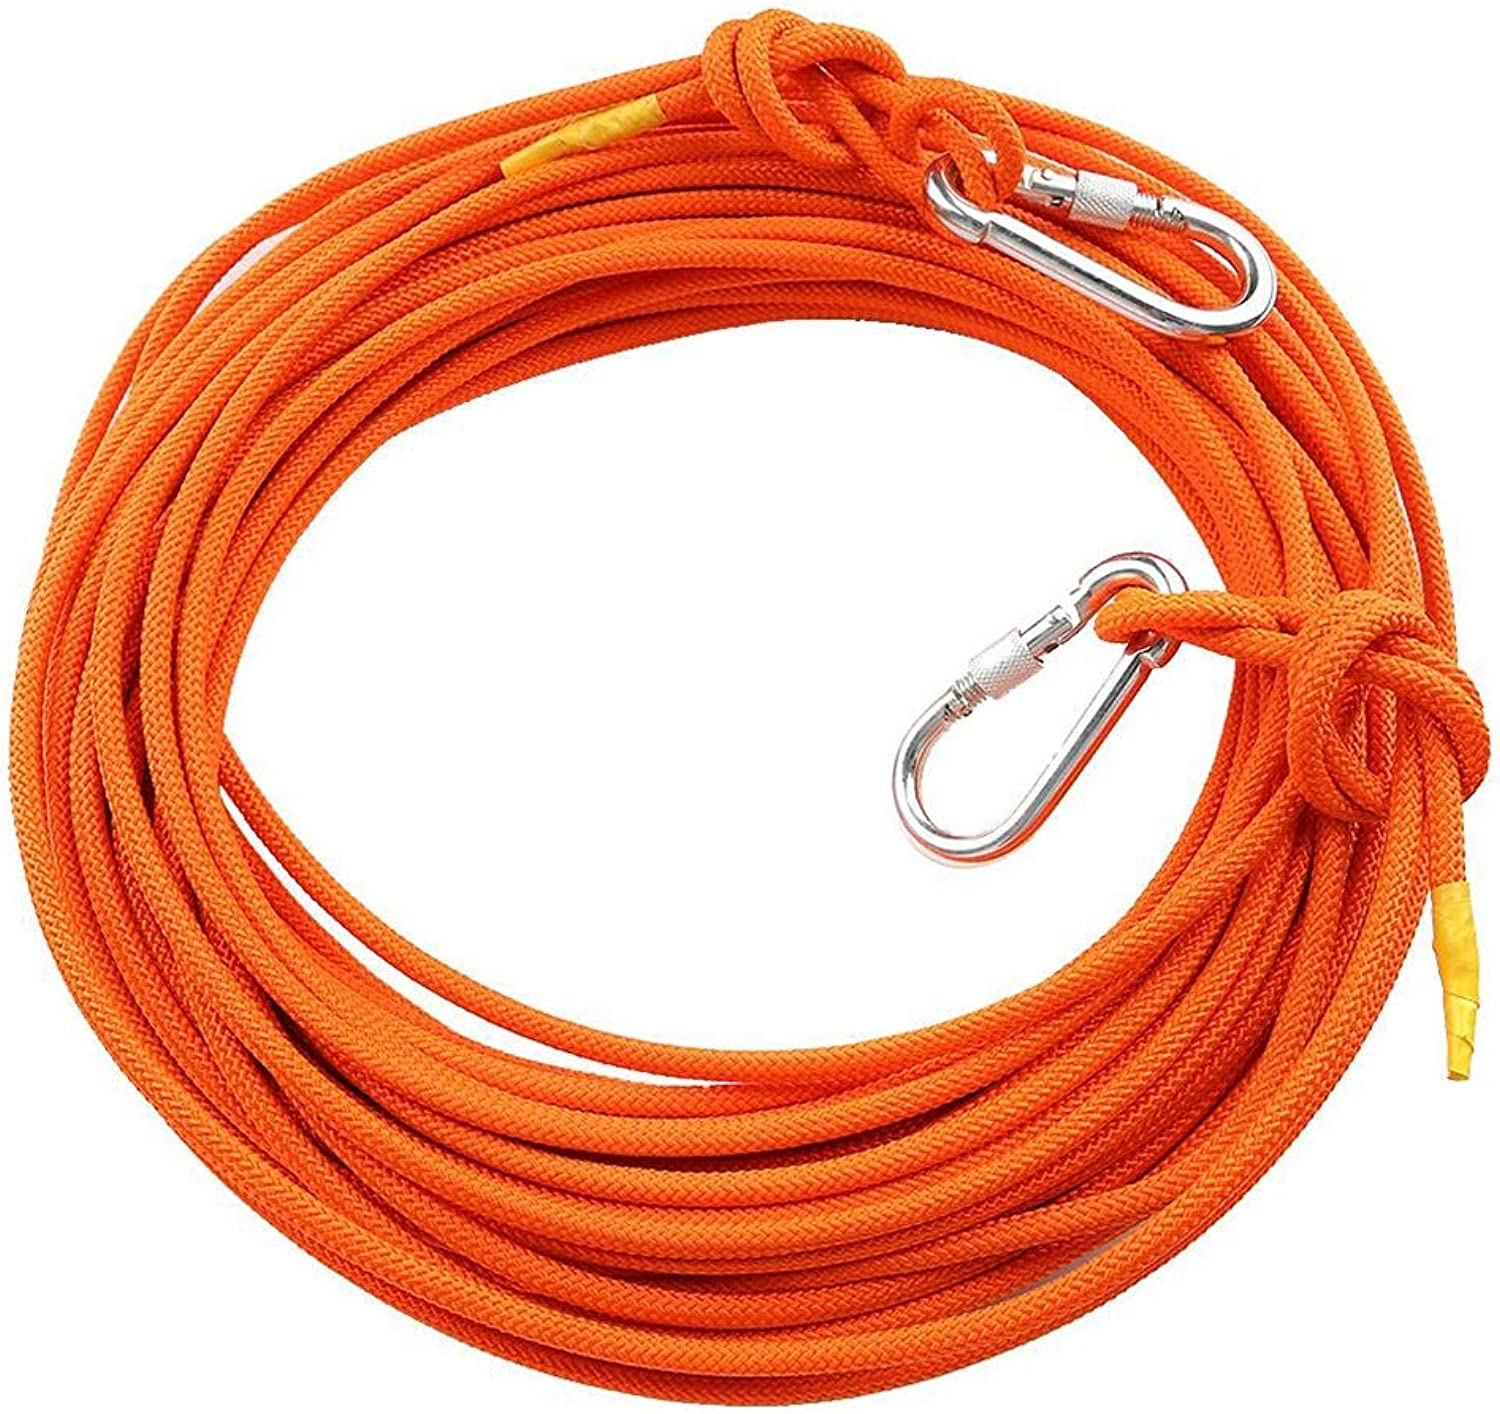 WYX Outdoor Climbing Rope, Diameter 8 Mm High Floor Fire Rescue Rope Escape Self Rescue Rope Emergency Home Fire Safety (color   orange, Size   Diameter 8 mm 60M)